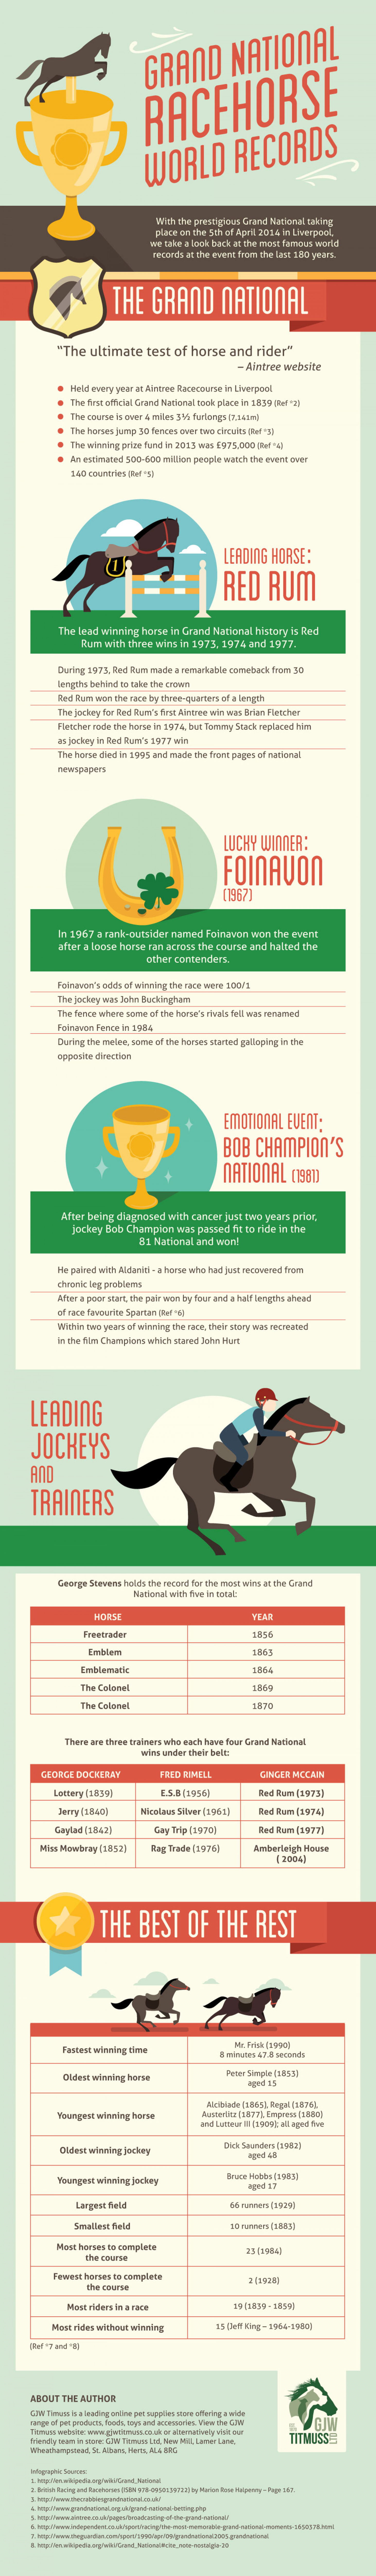 Grand National Racehorse World Records Infographic